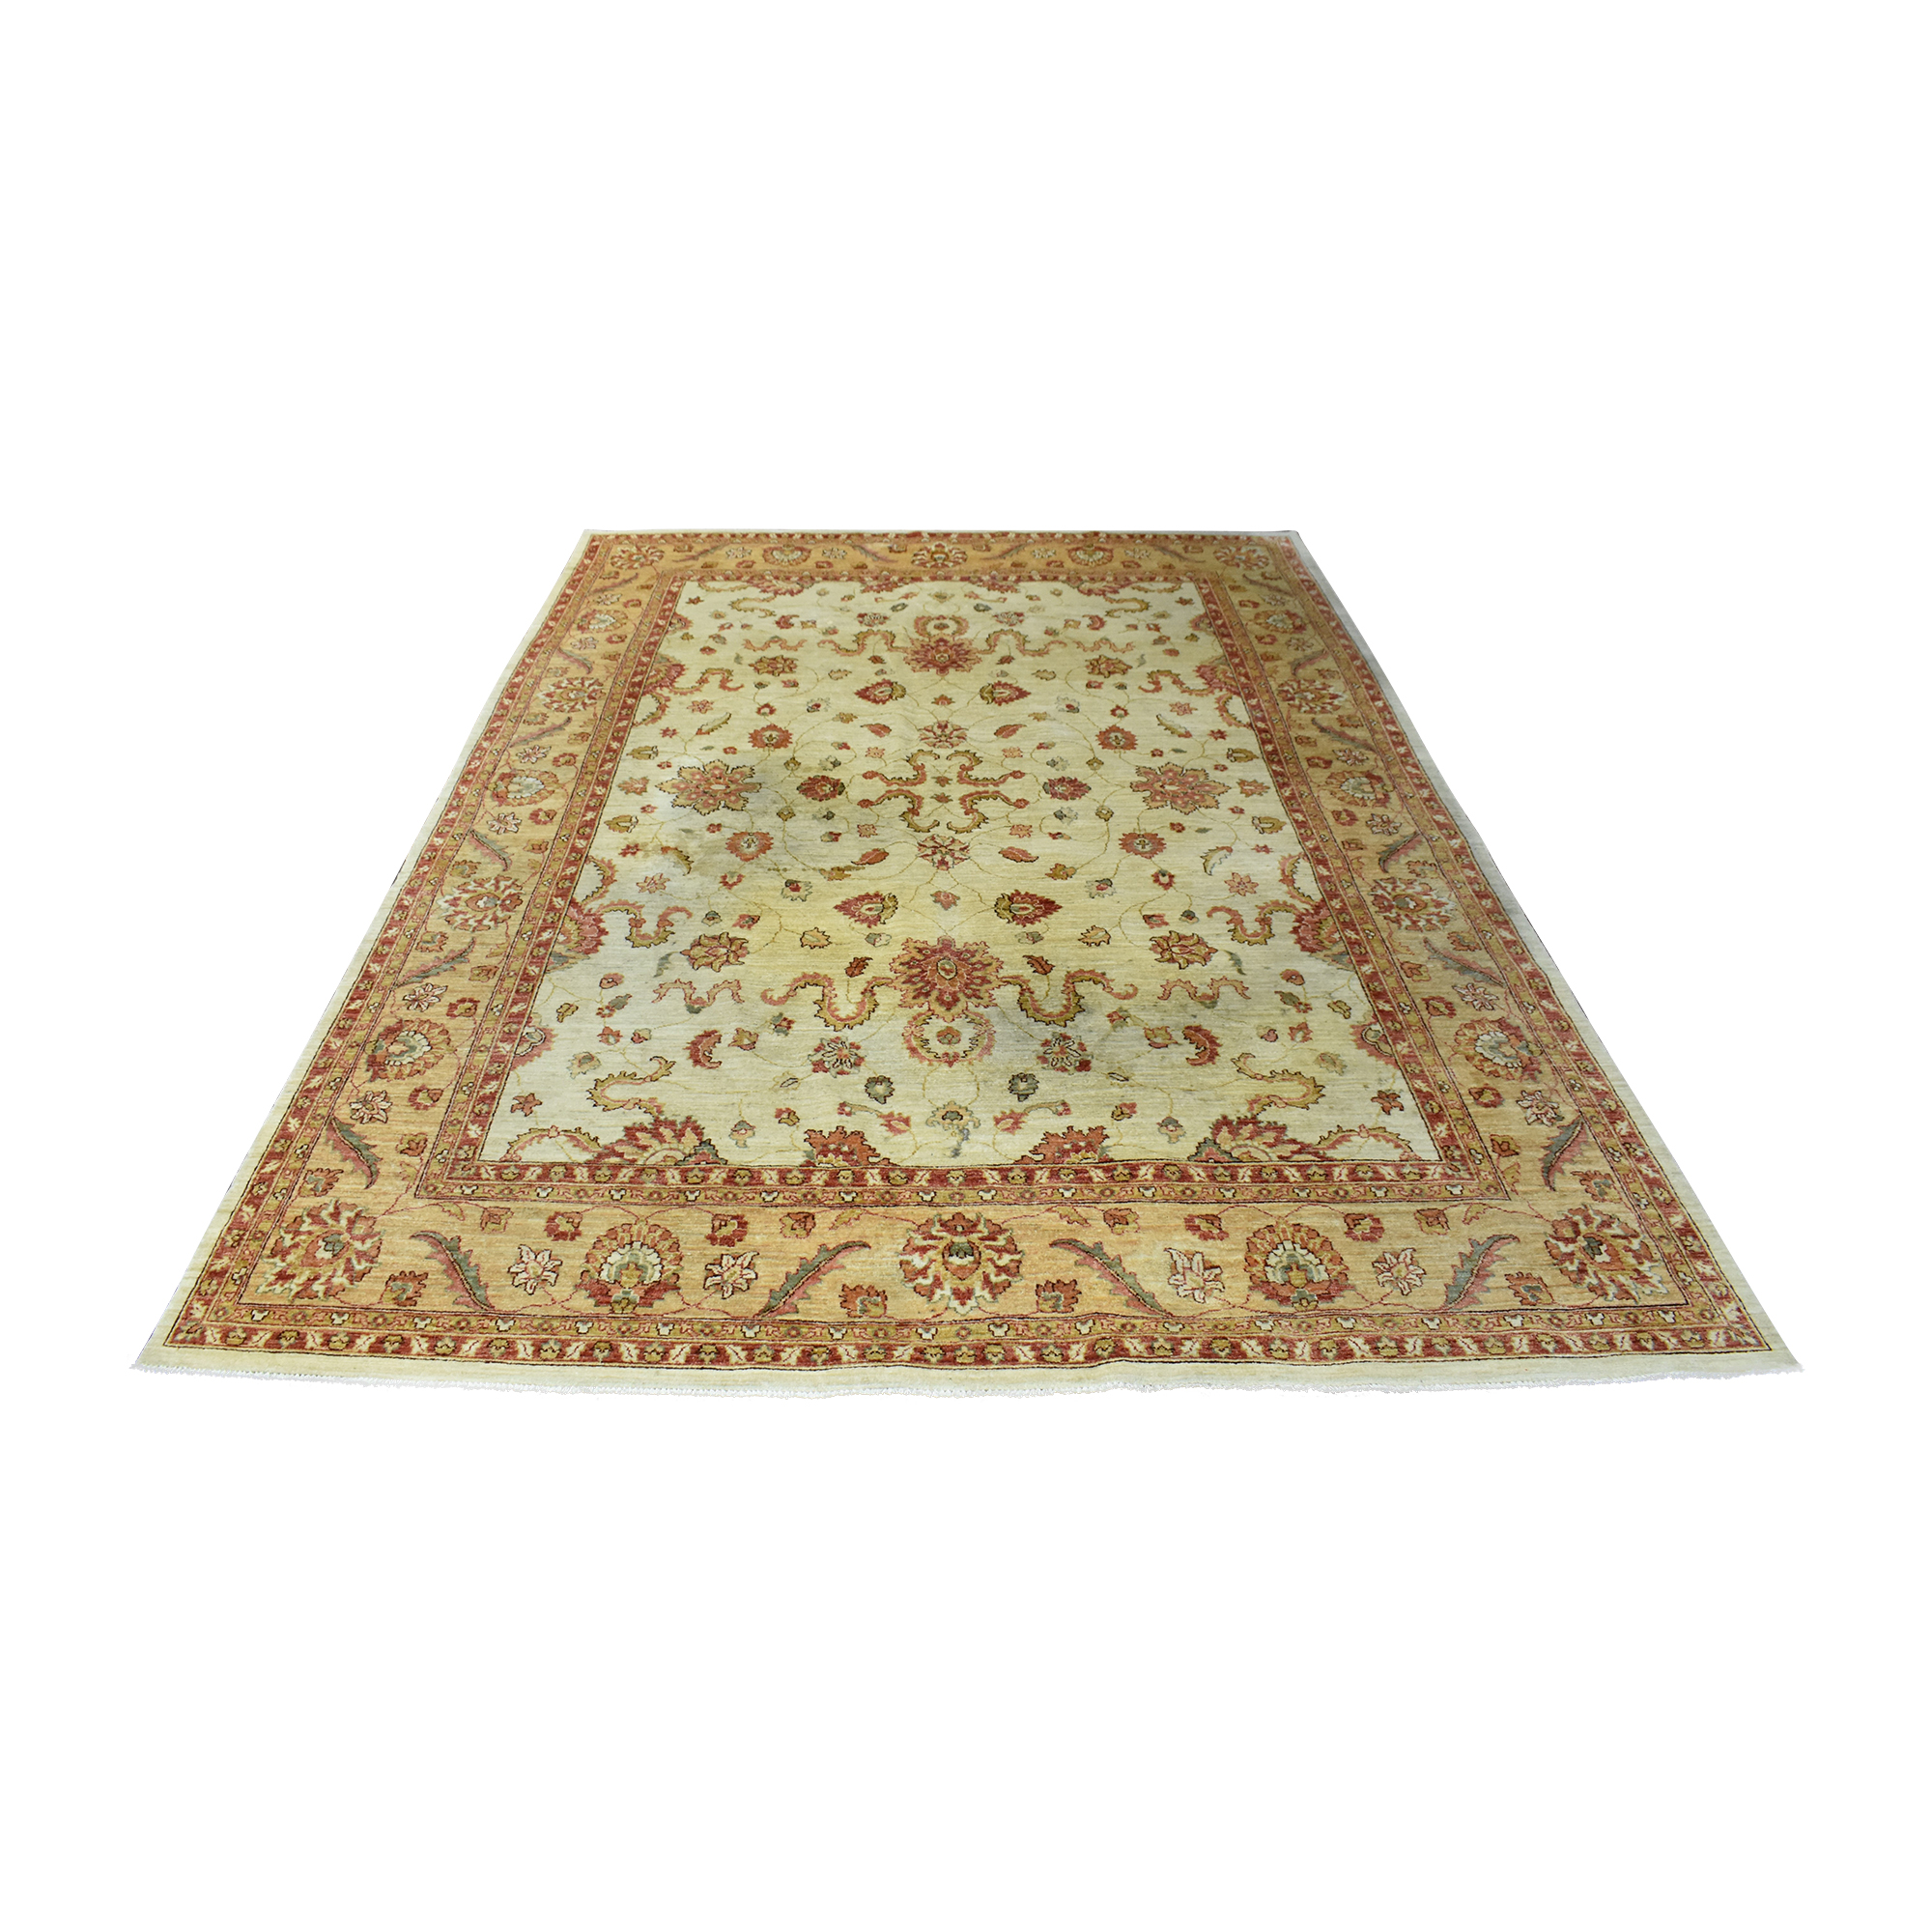 shop Sultankoy Sultankoy Turkish Area Rug online